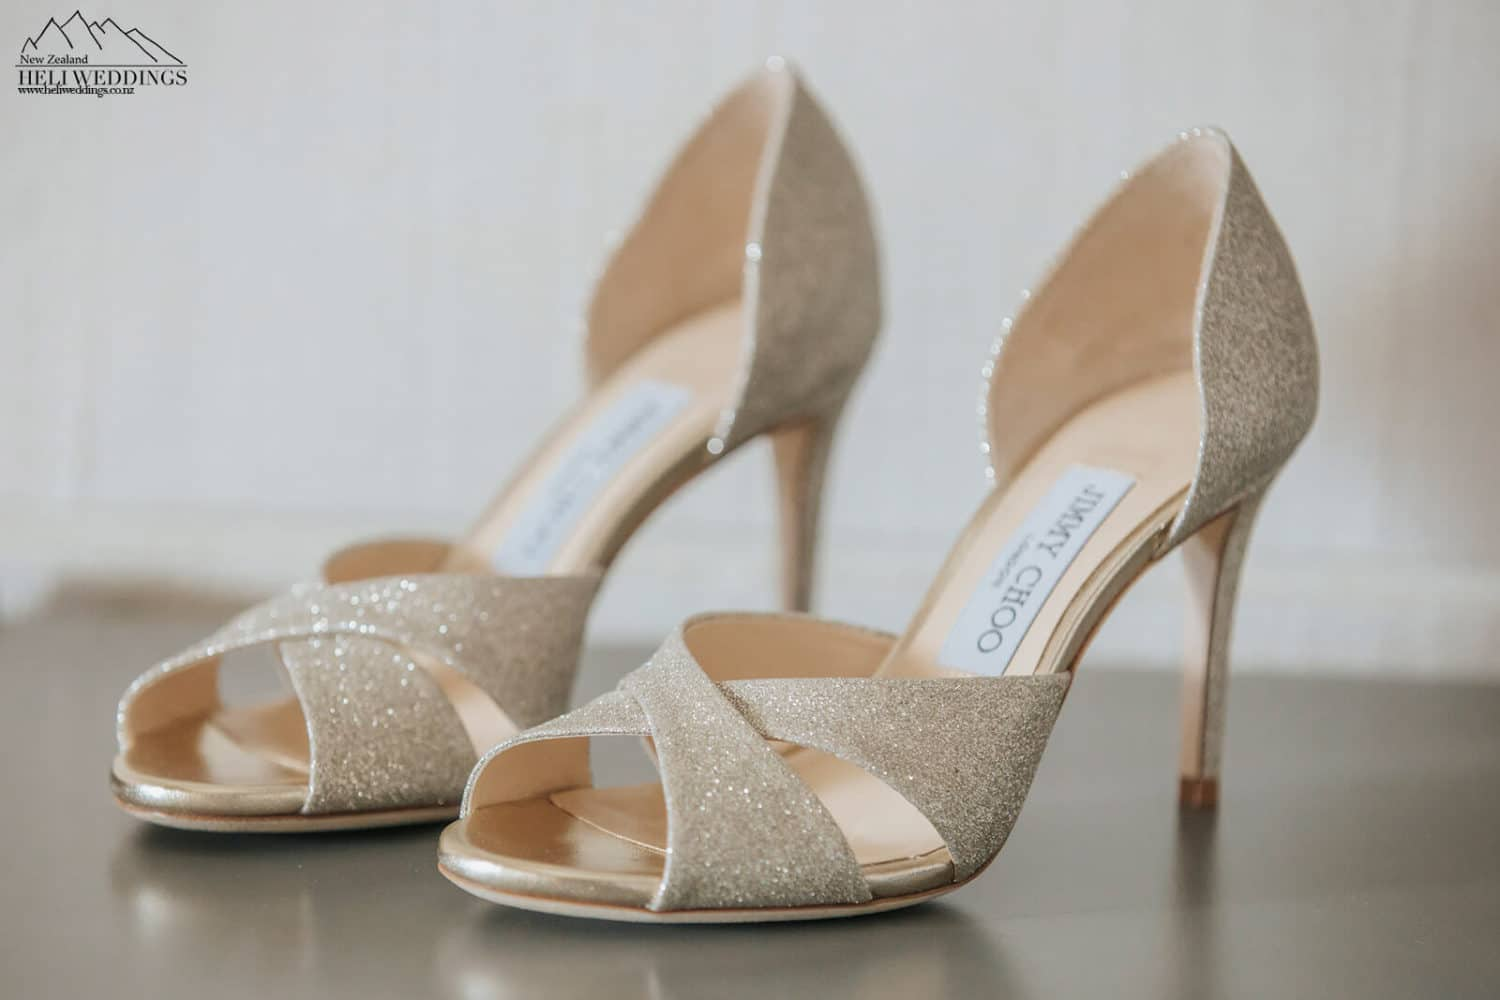 Jimmy Choo Wedding shoes Queenstown